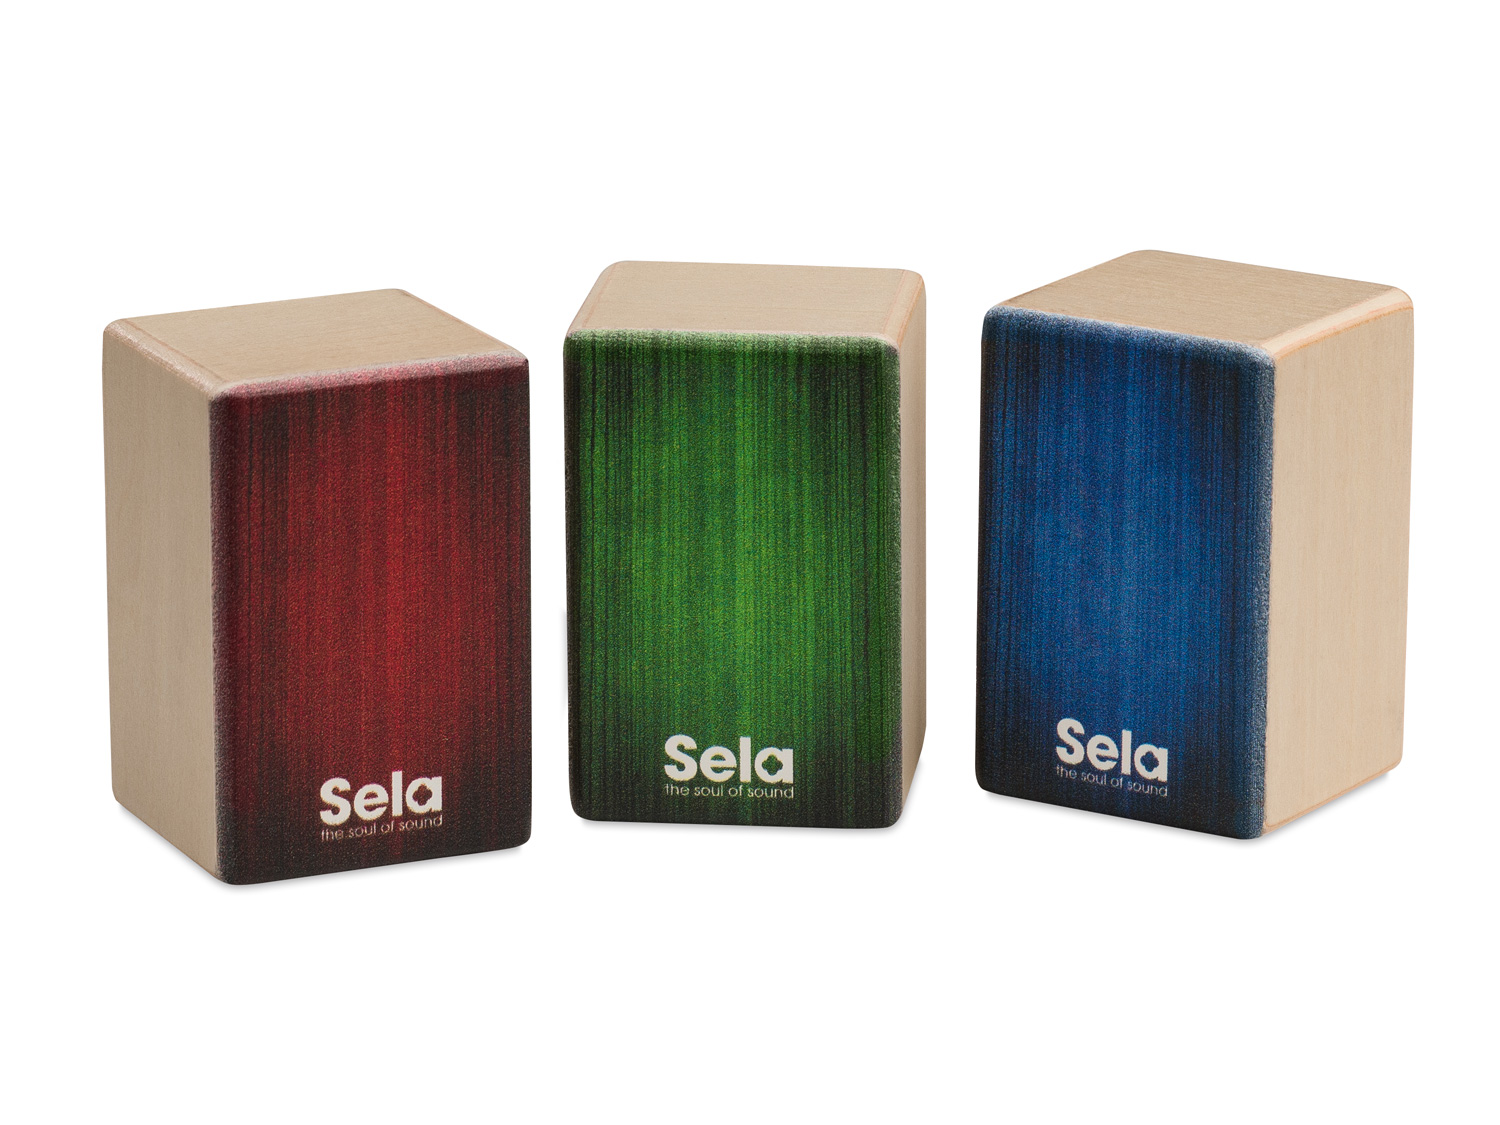 Sela Mini Cajon Shaker Set Product Photos 1